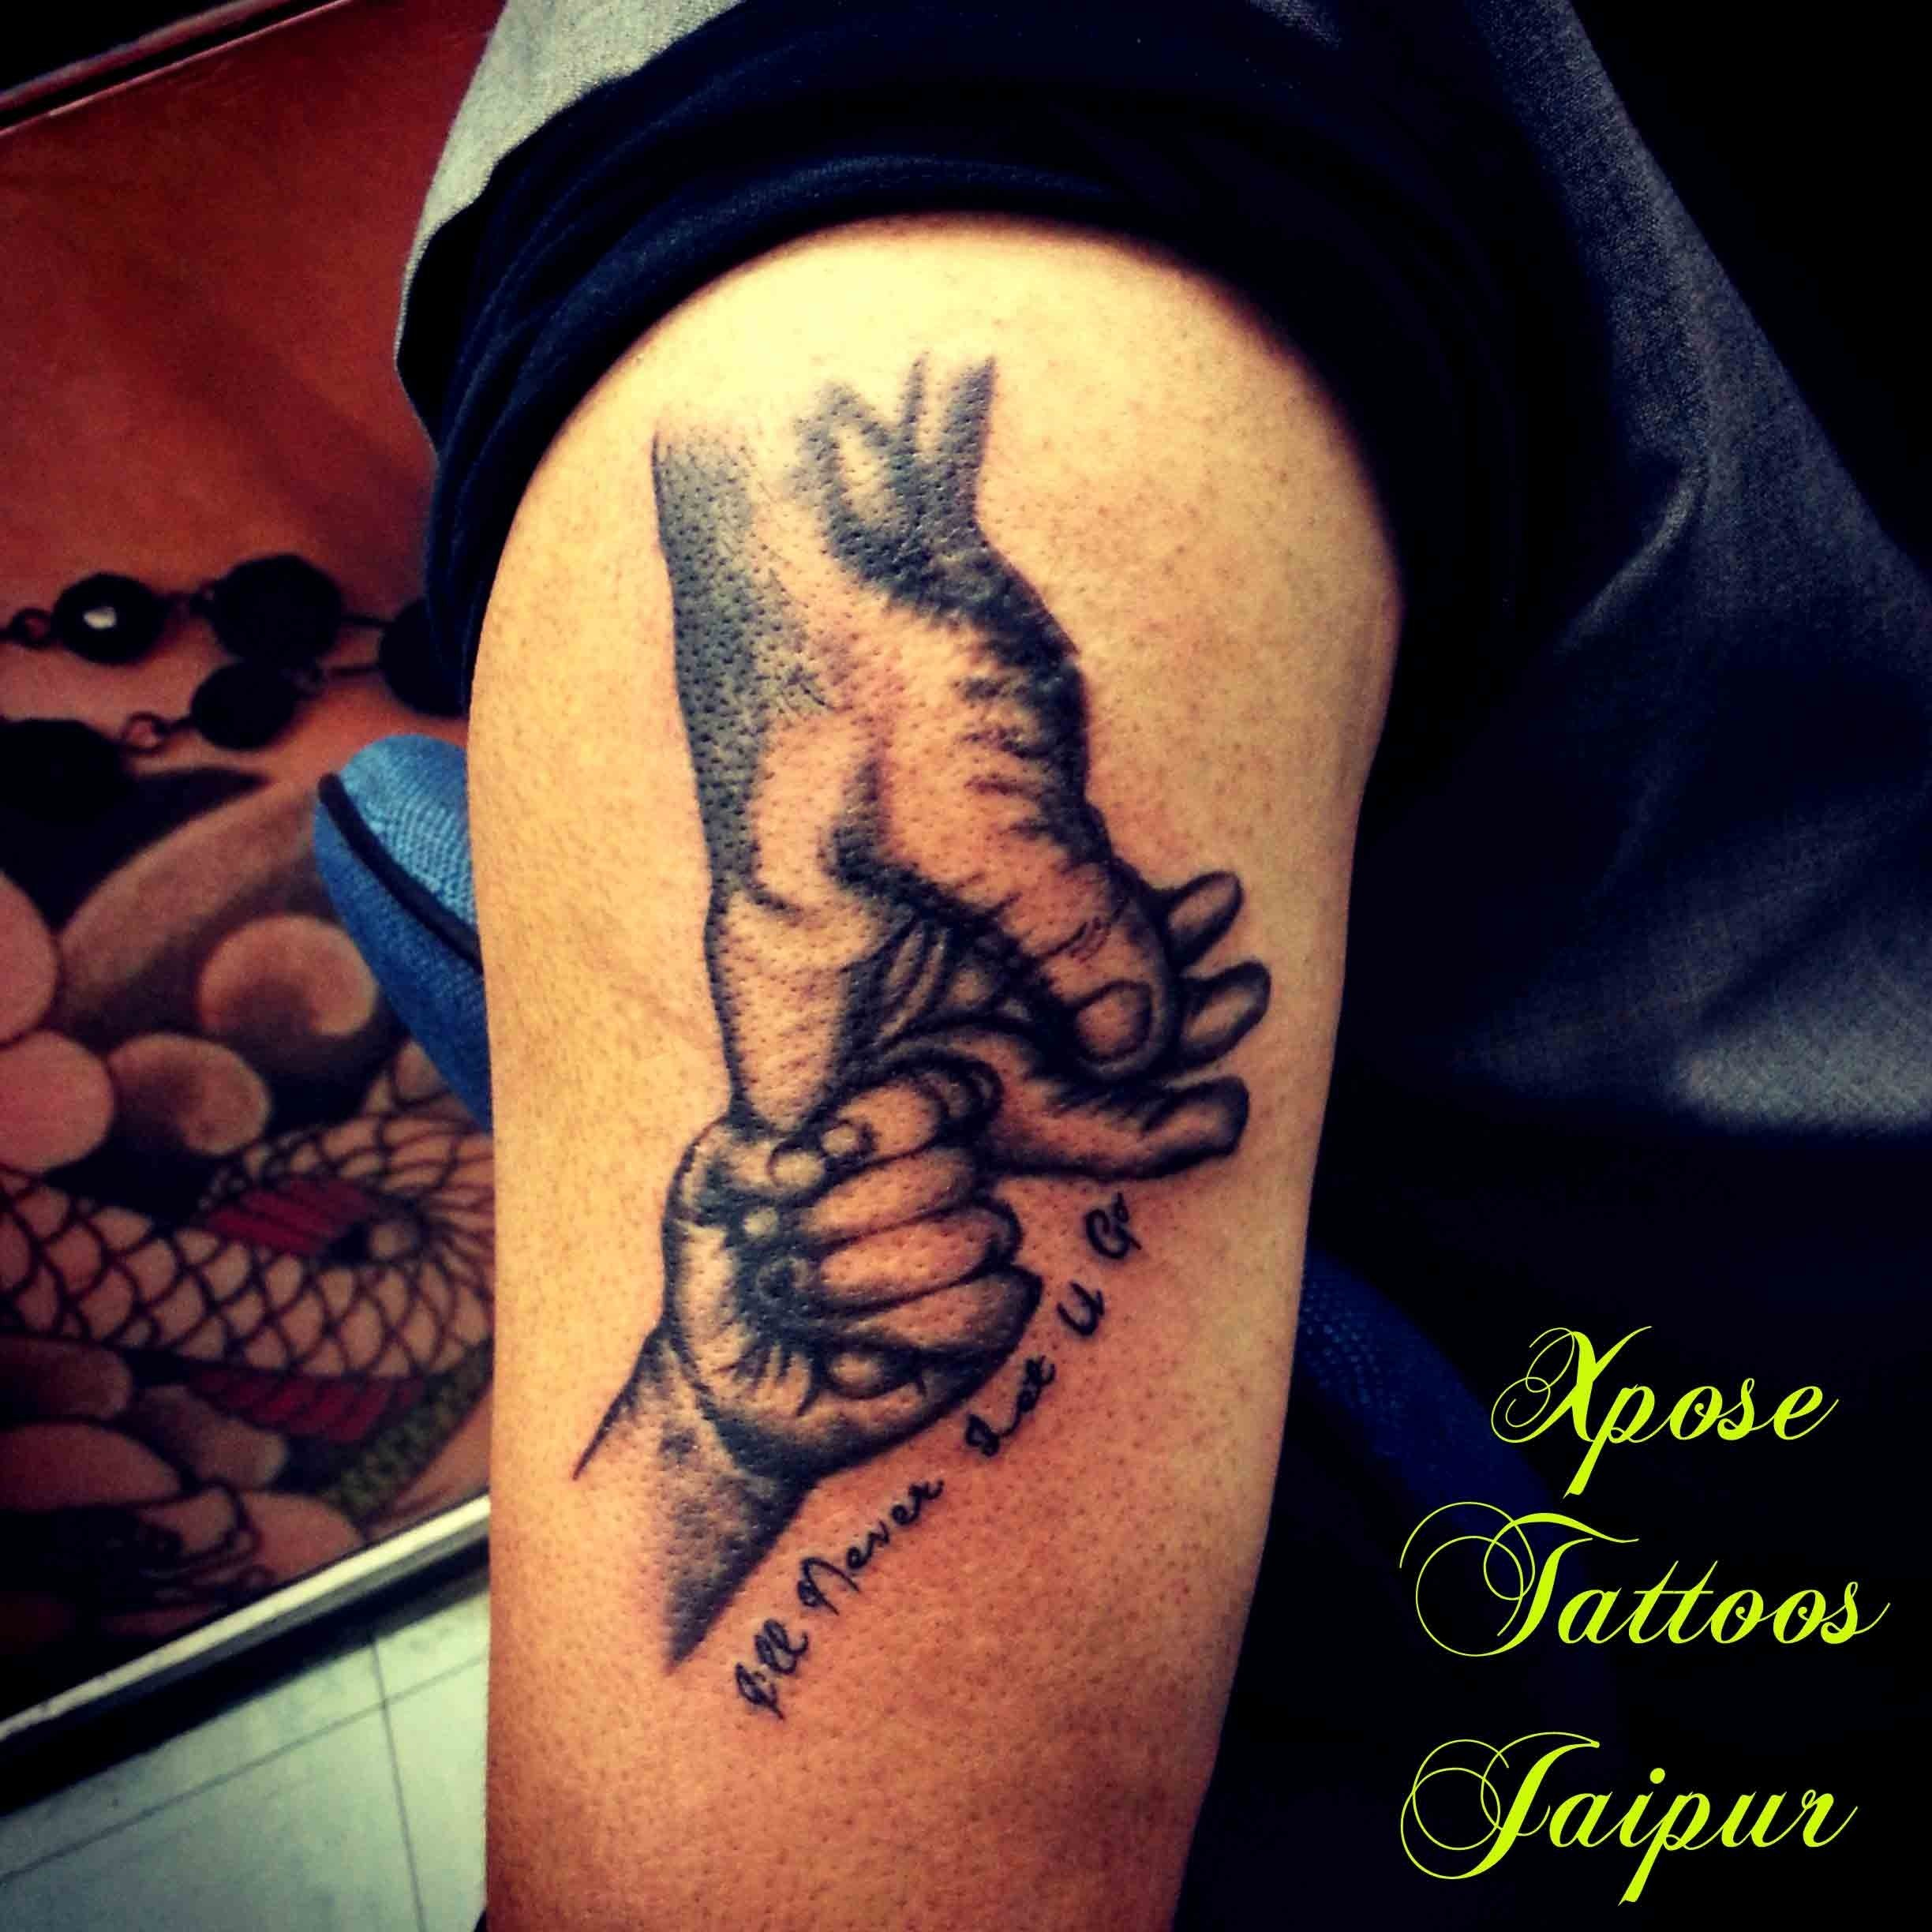 10 Ideal Father And Son Tattoo Ideas dashanan ravana tattoo by xpose tattoos jaipur india xpose tattoos 1